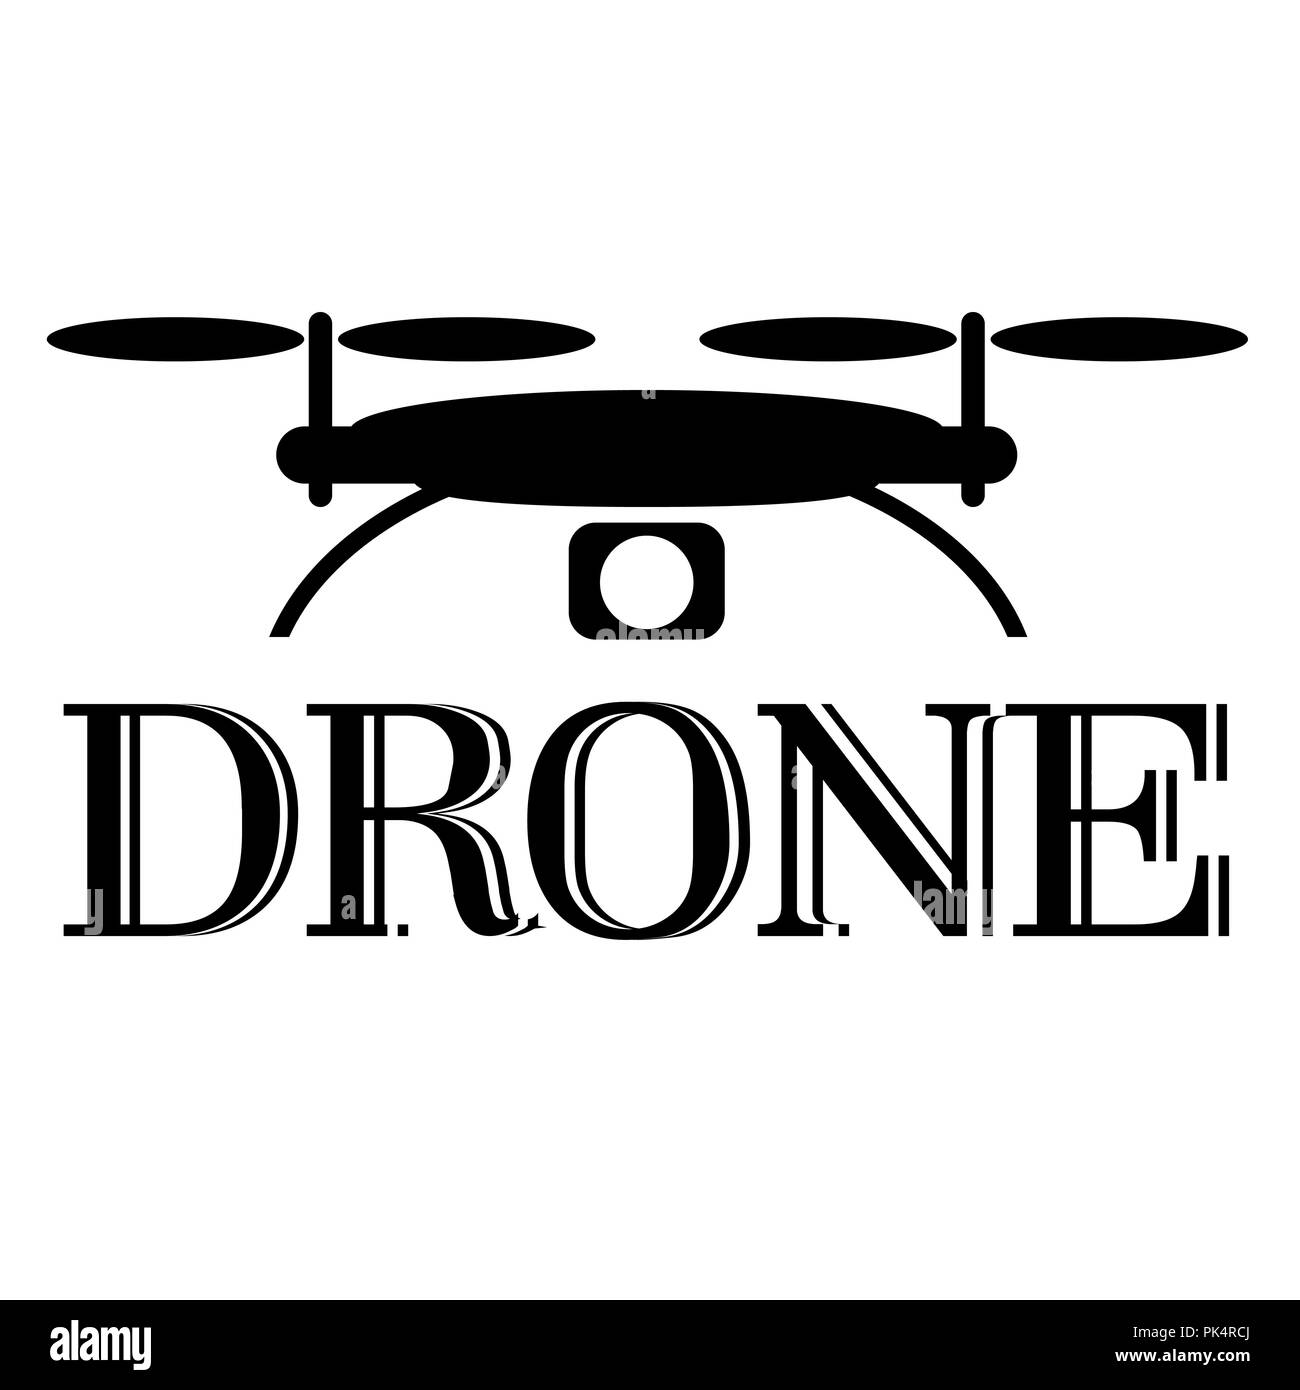 Drone icon or logo on a white background, vector illustration - Stock Image